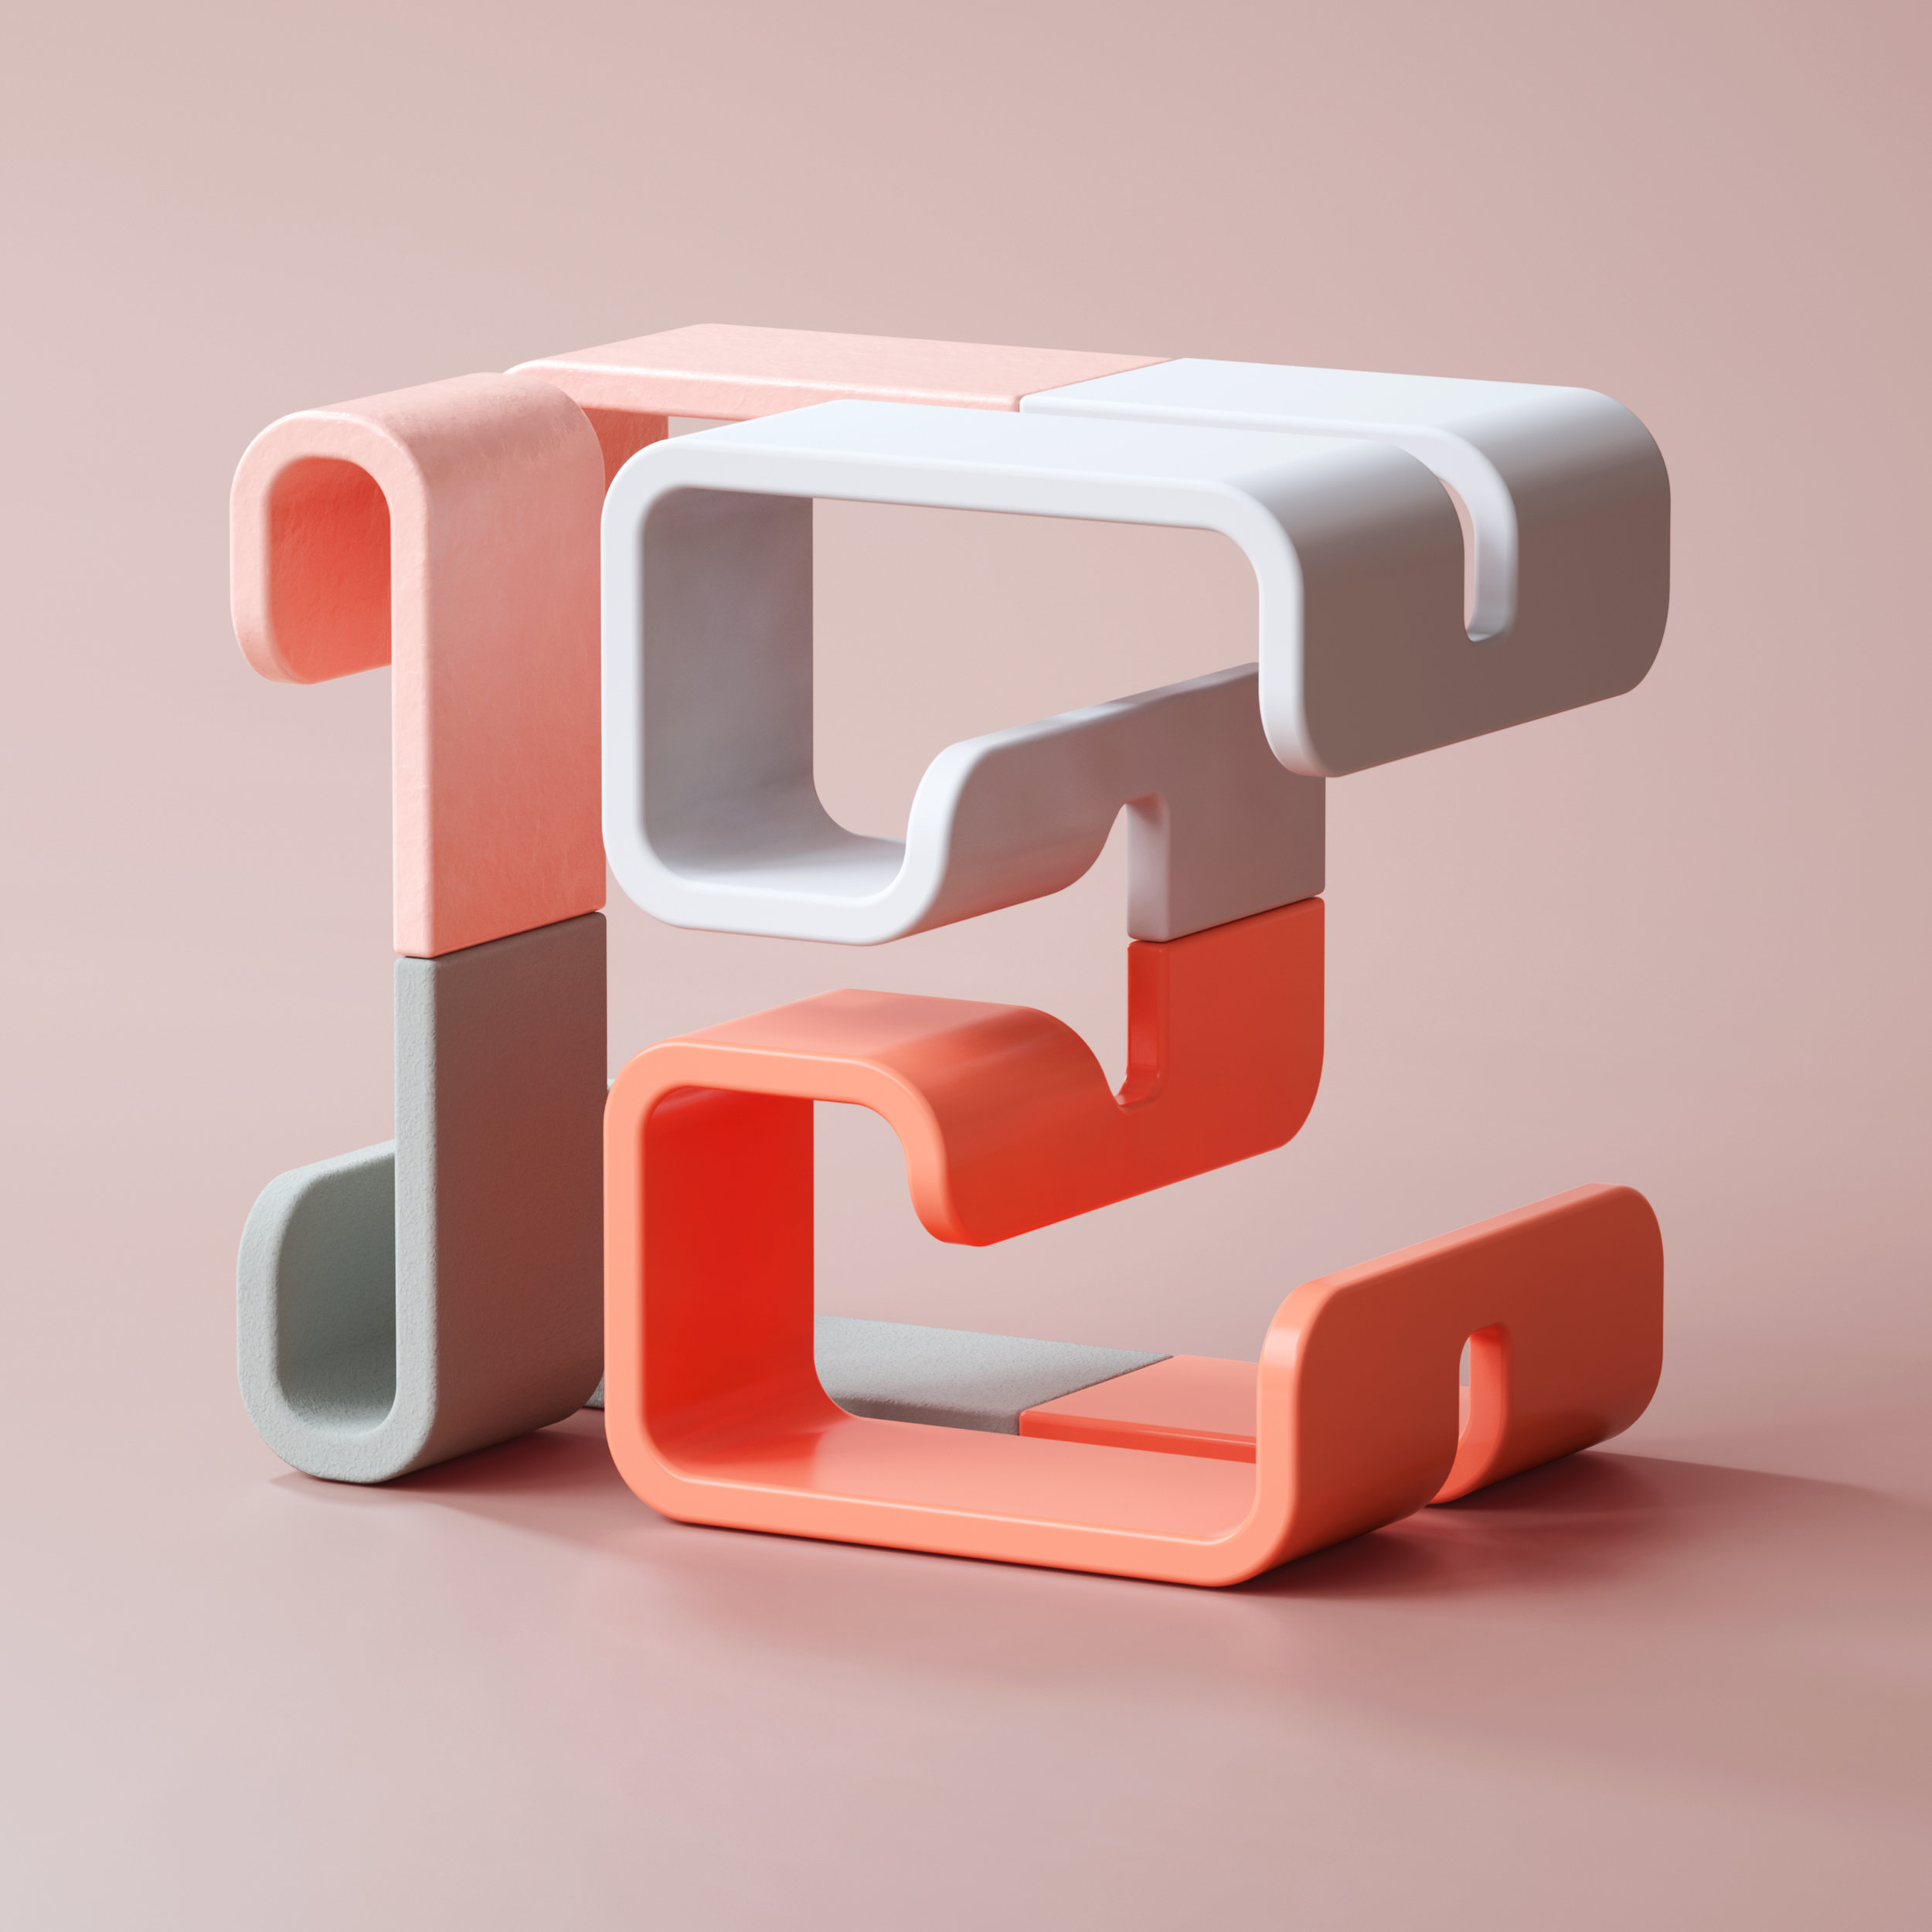 36 Days of Type 2019 - 3D Typeform letter E visual.